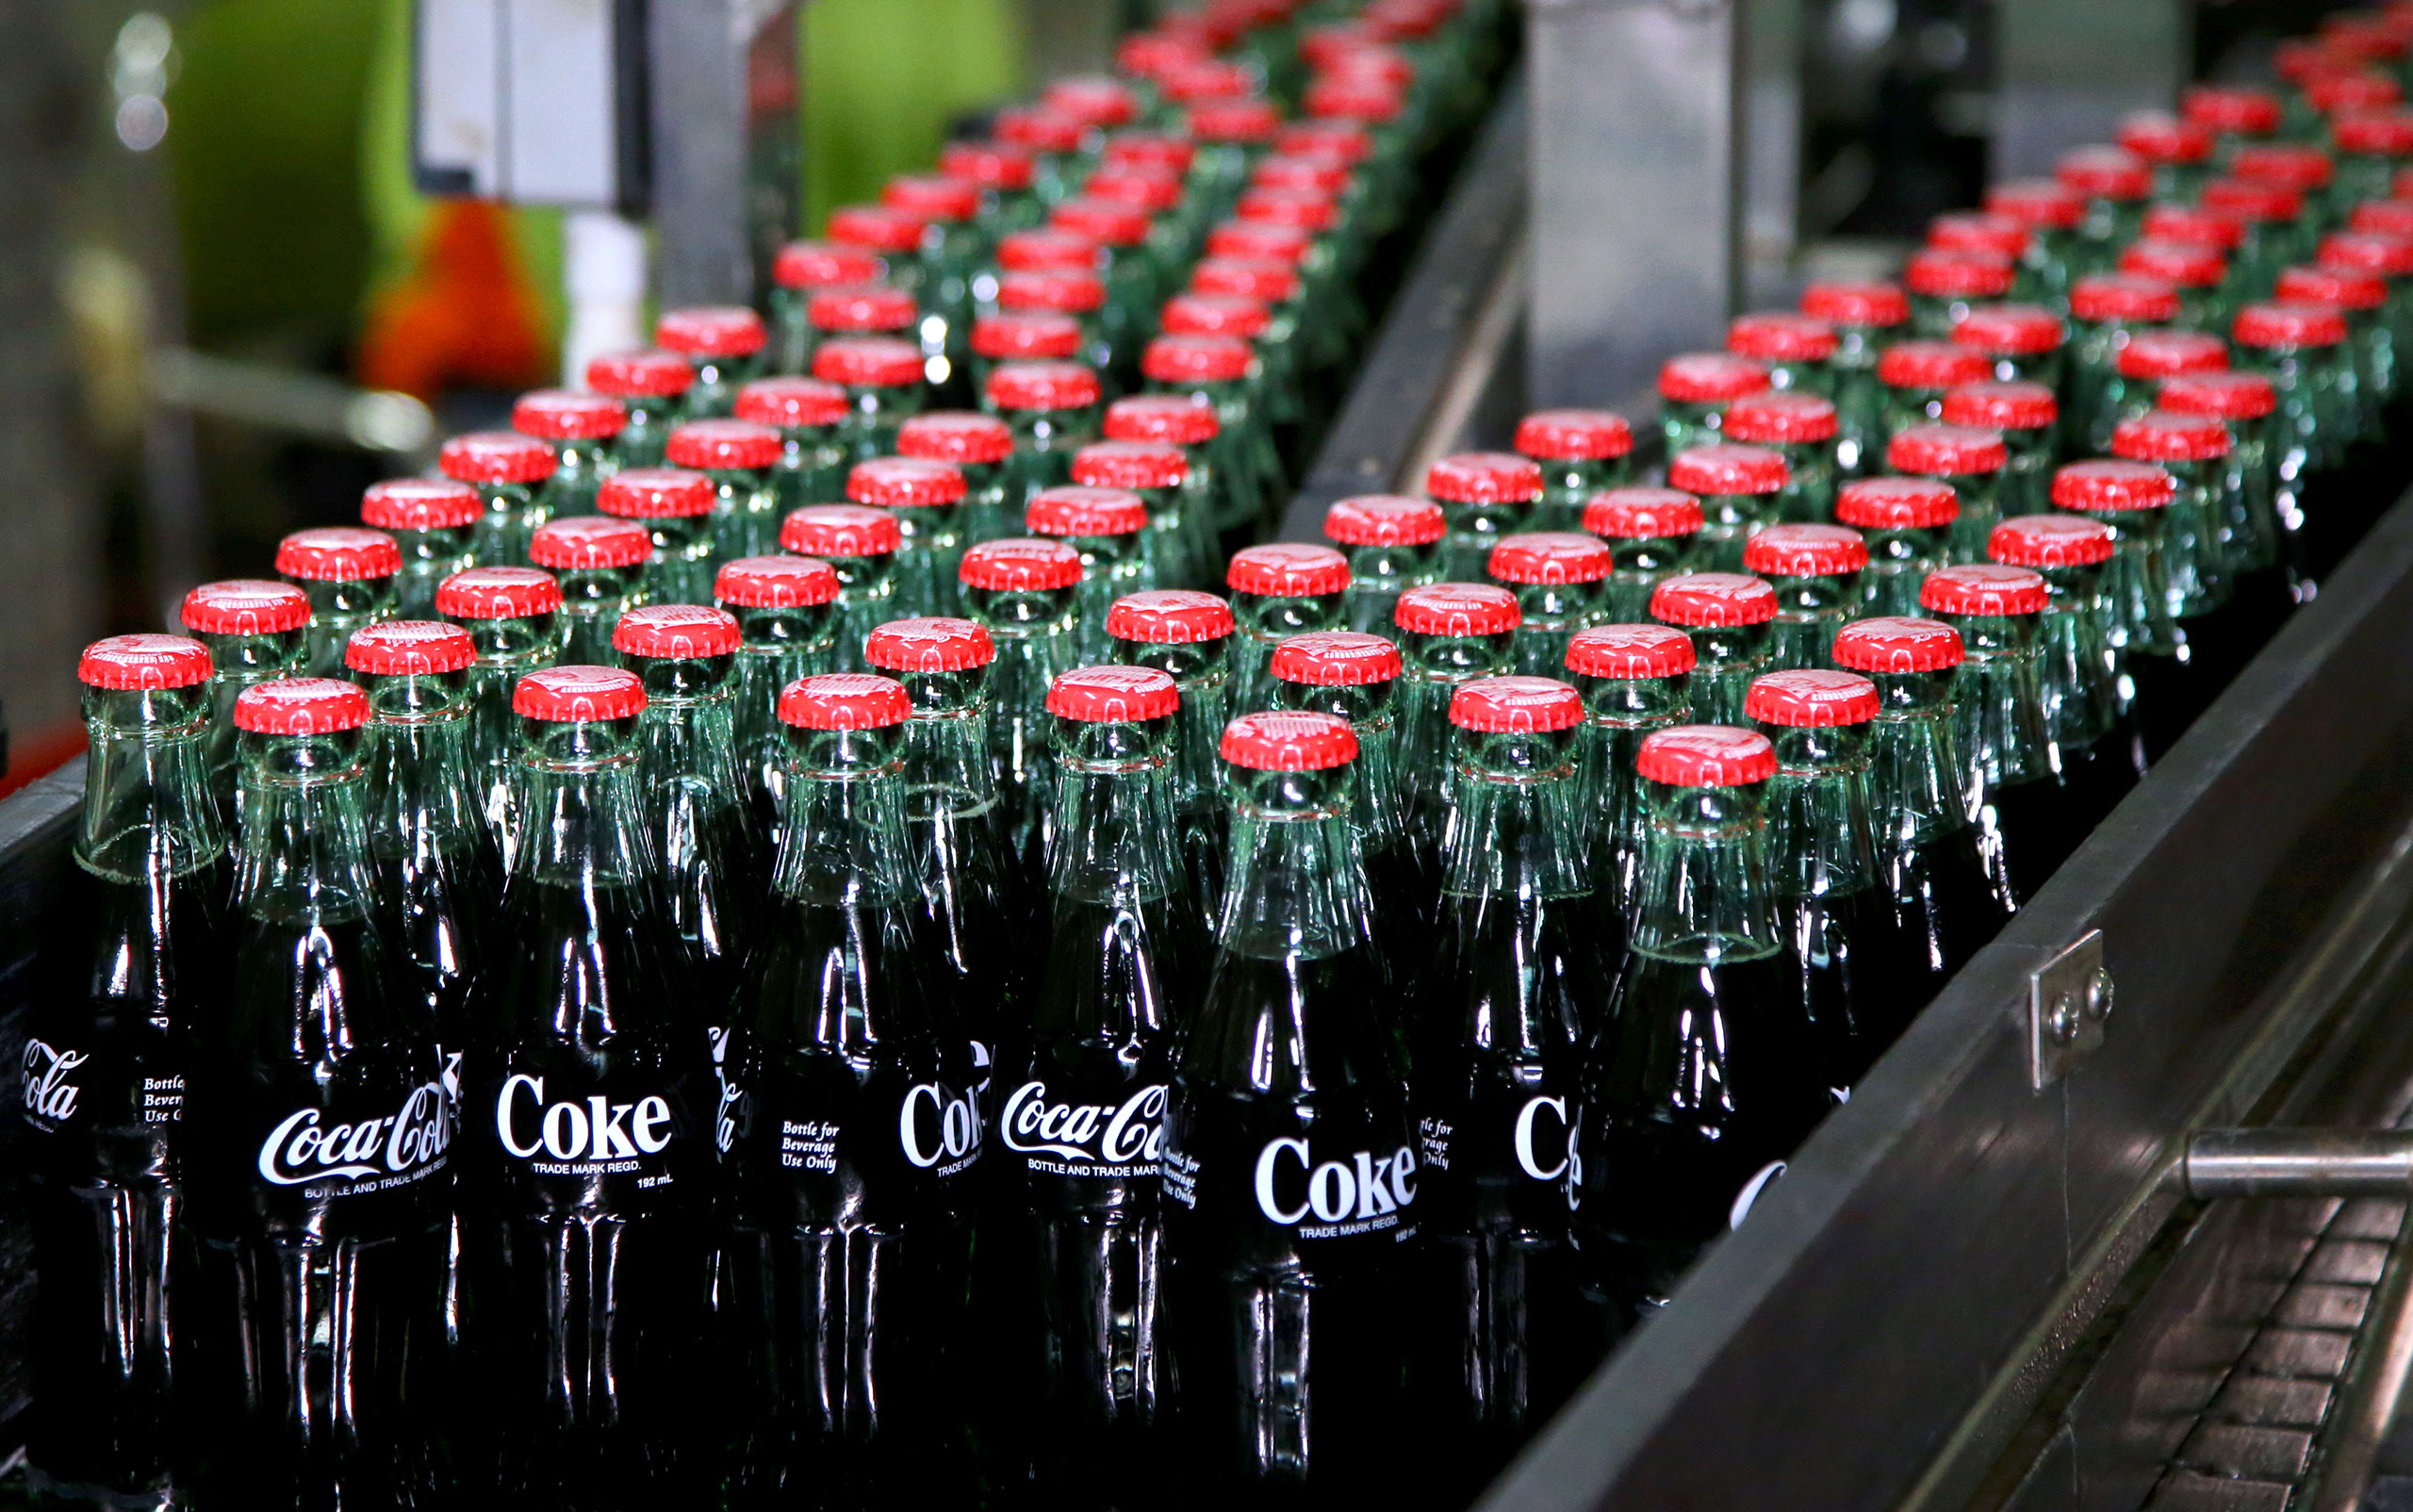 Swire Coca-Cola – Cooperating with suppliers